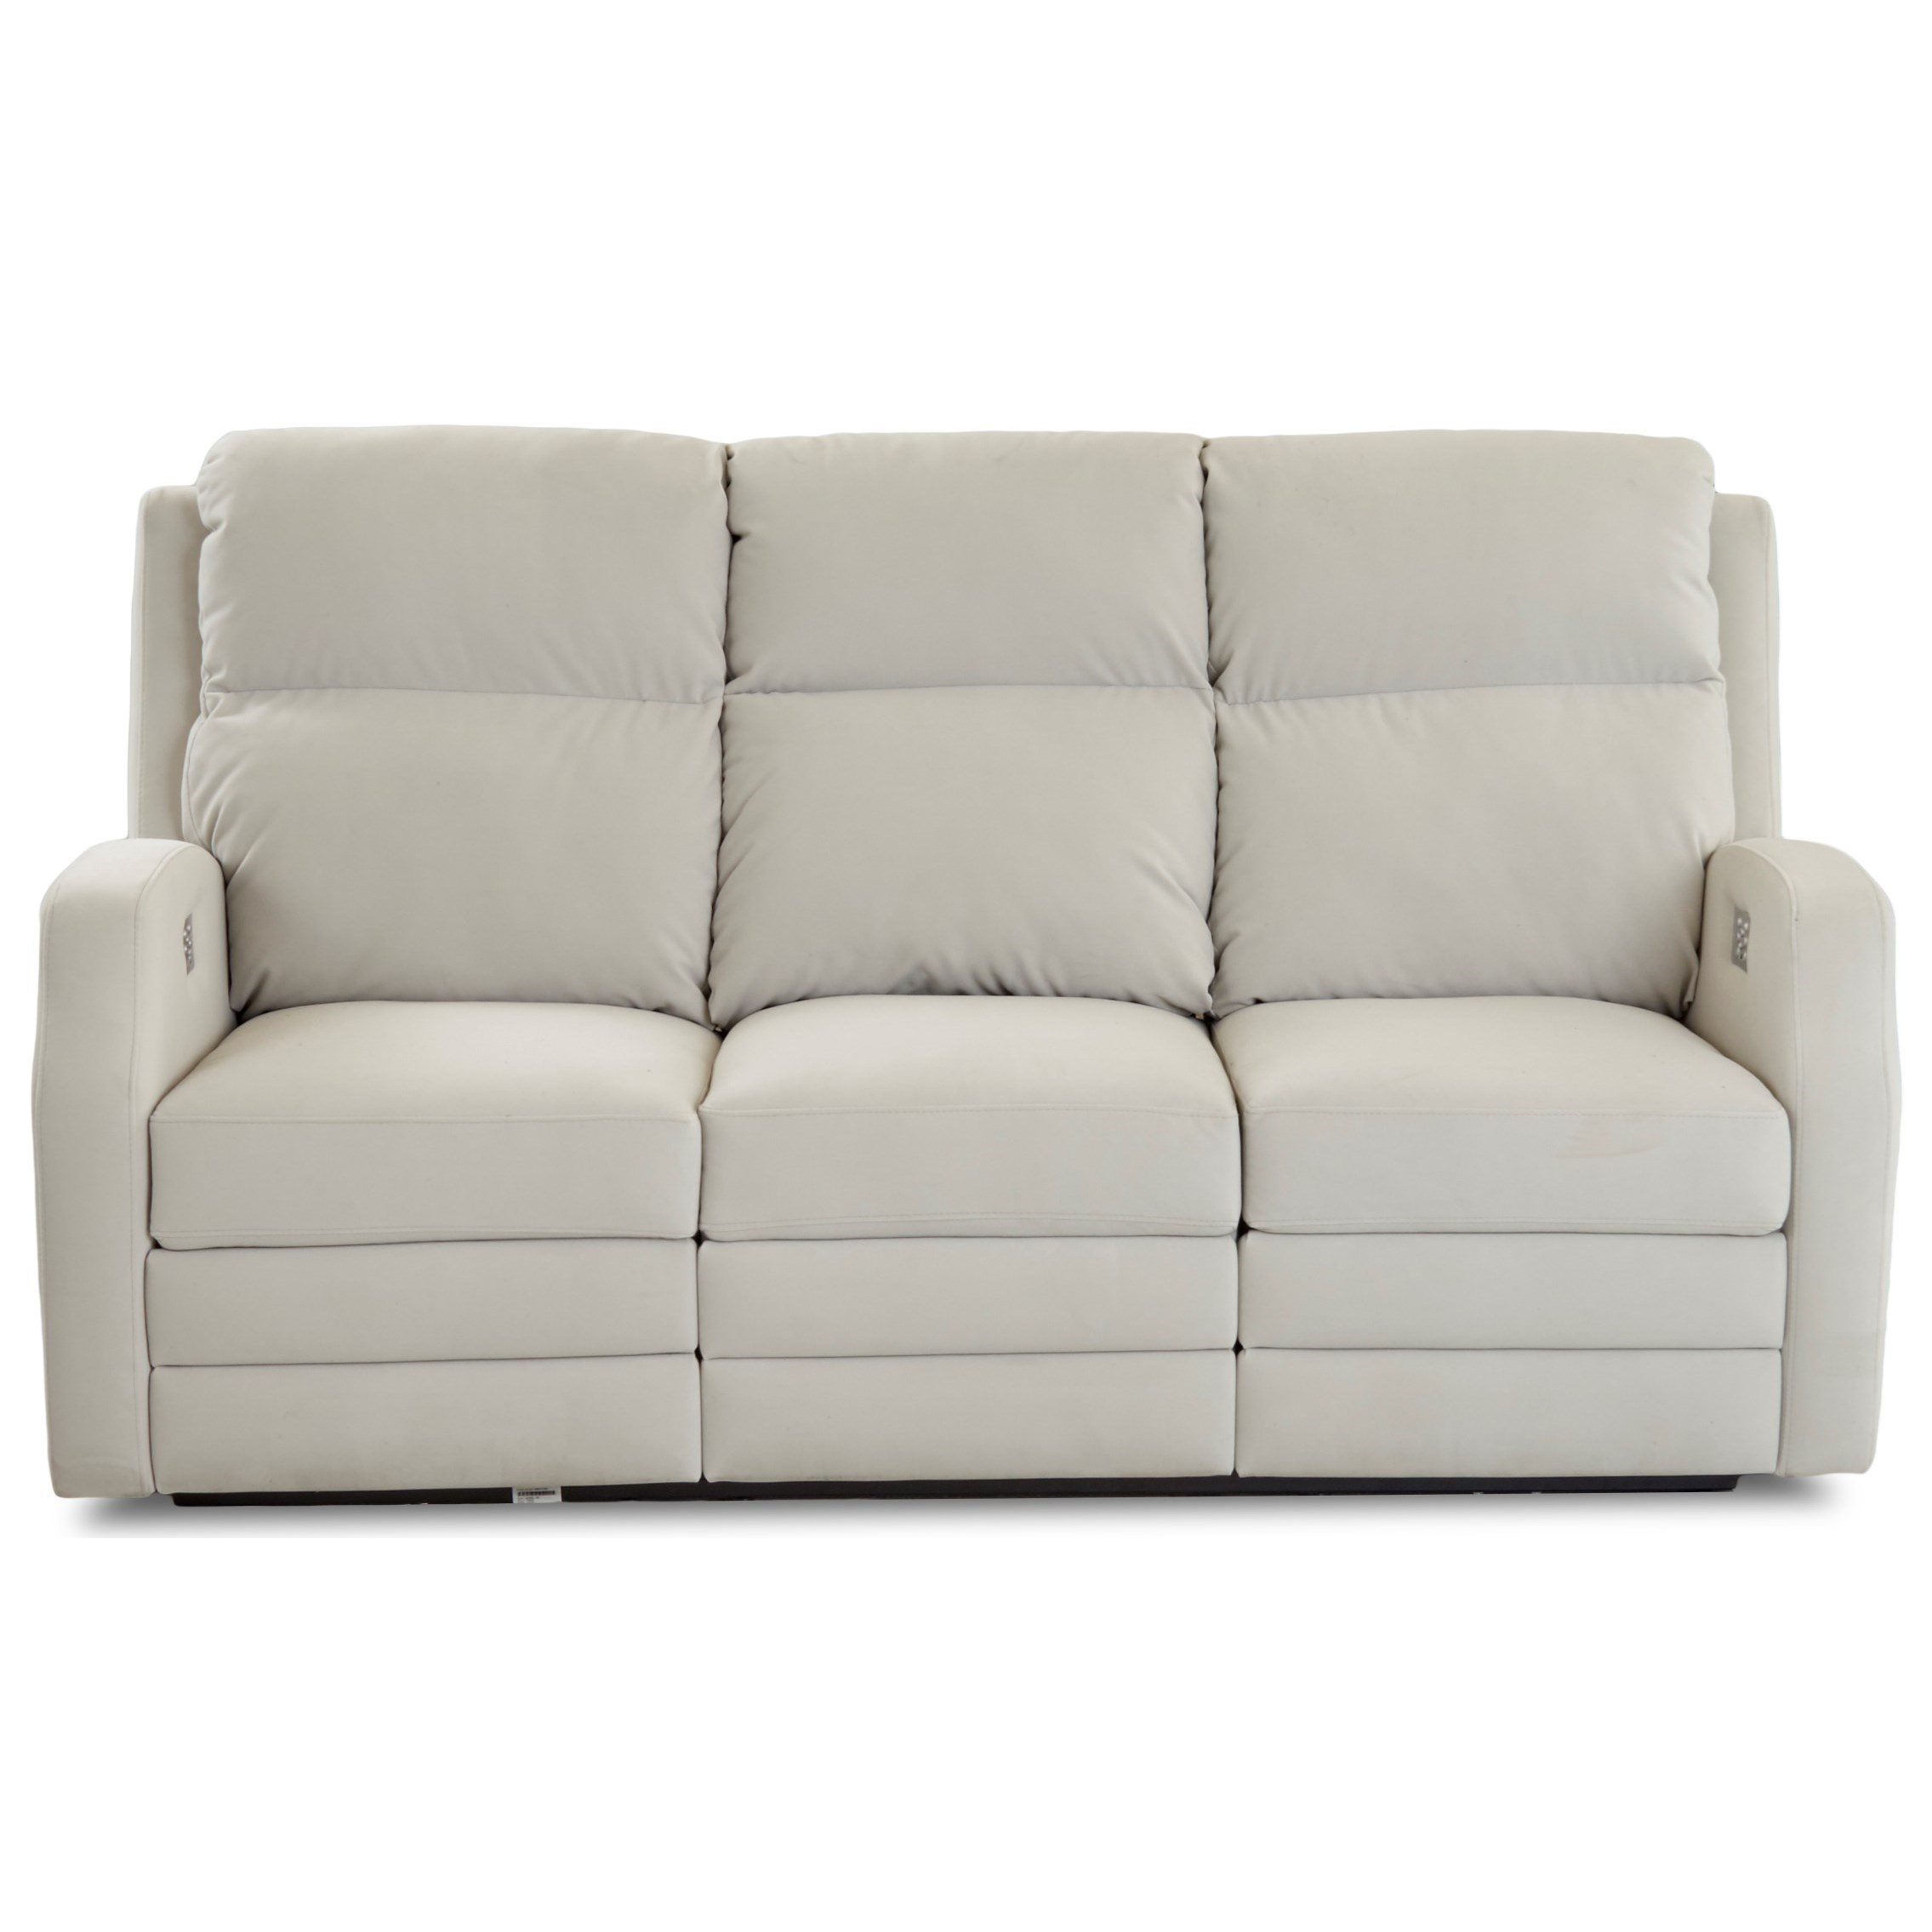 Kamiah Power Reclining Sofa w/ Pwr Headrests by Klaussner at Lapeer Furniture & Mattress Center